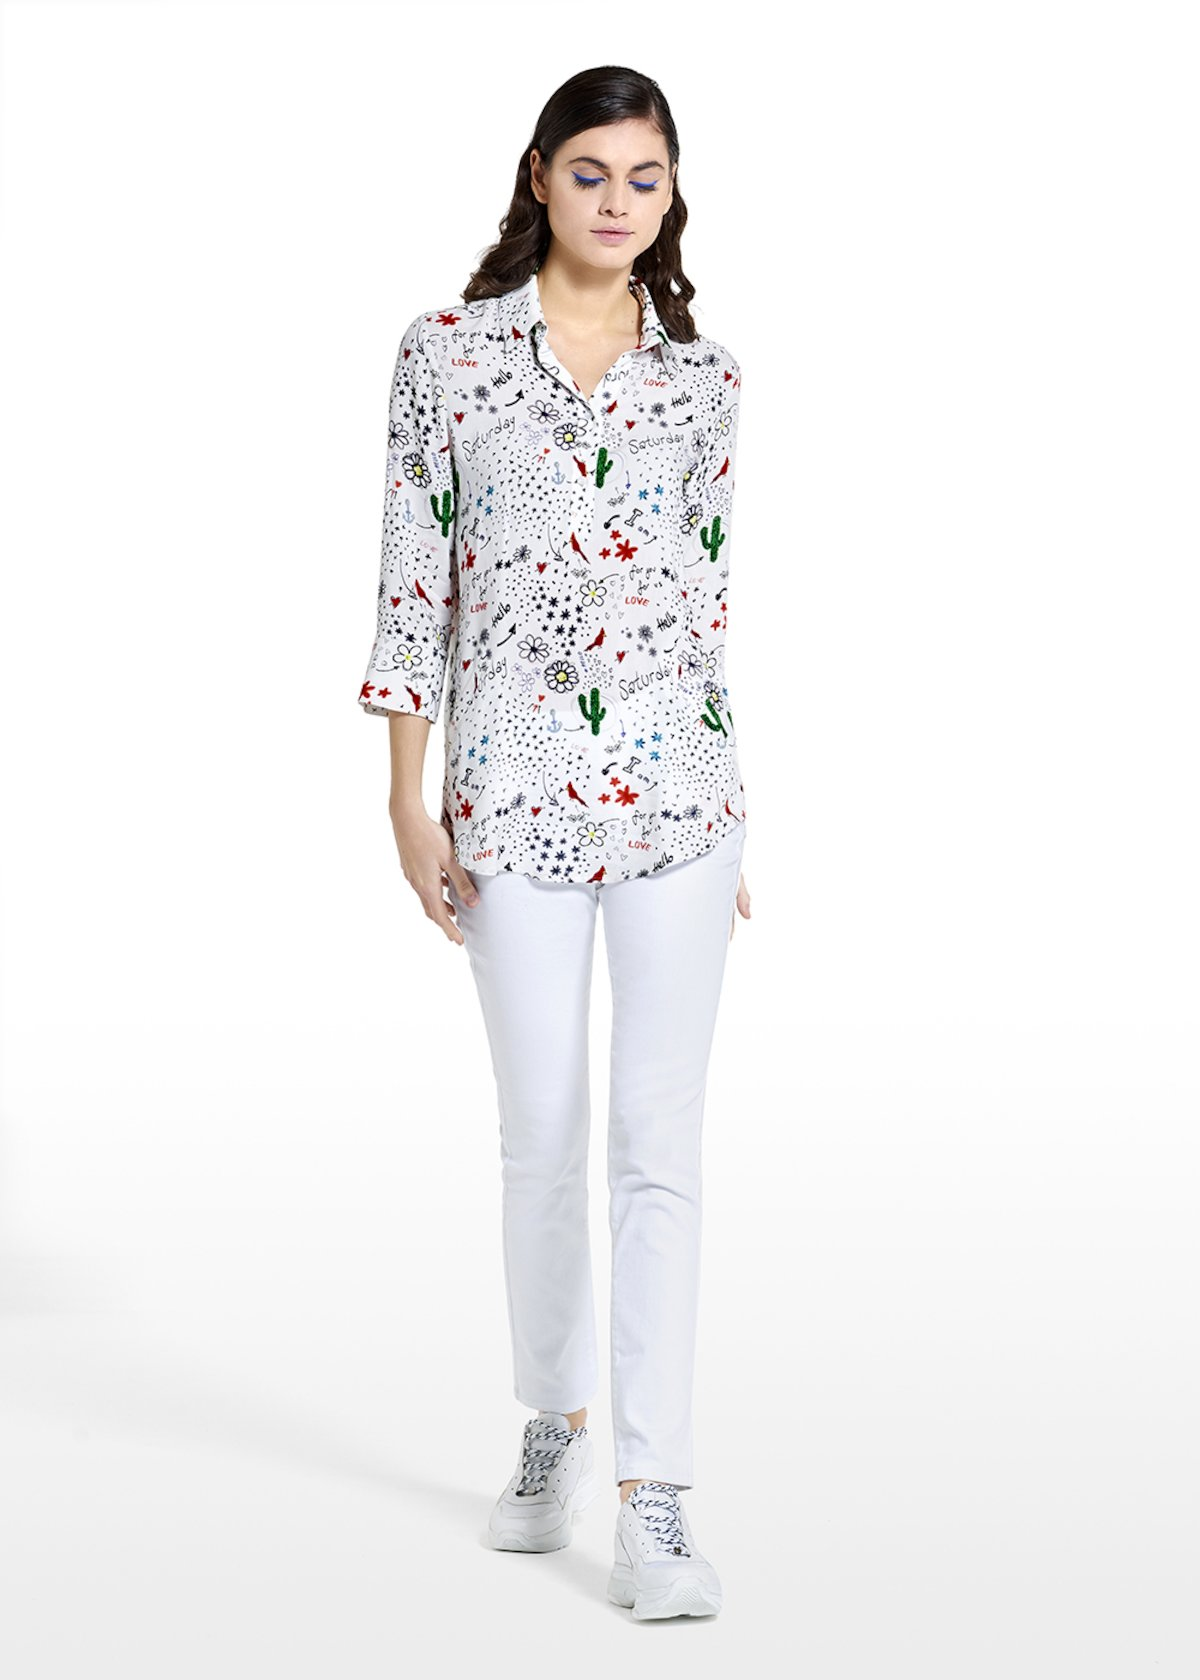 Camicia Candida fantasia dream tomorrow con colletto - Black White Fantasia - Donna - Immagine categoria